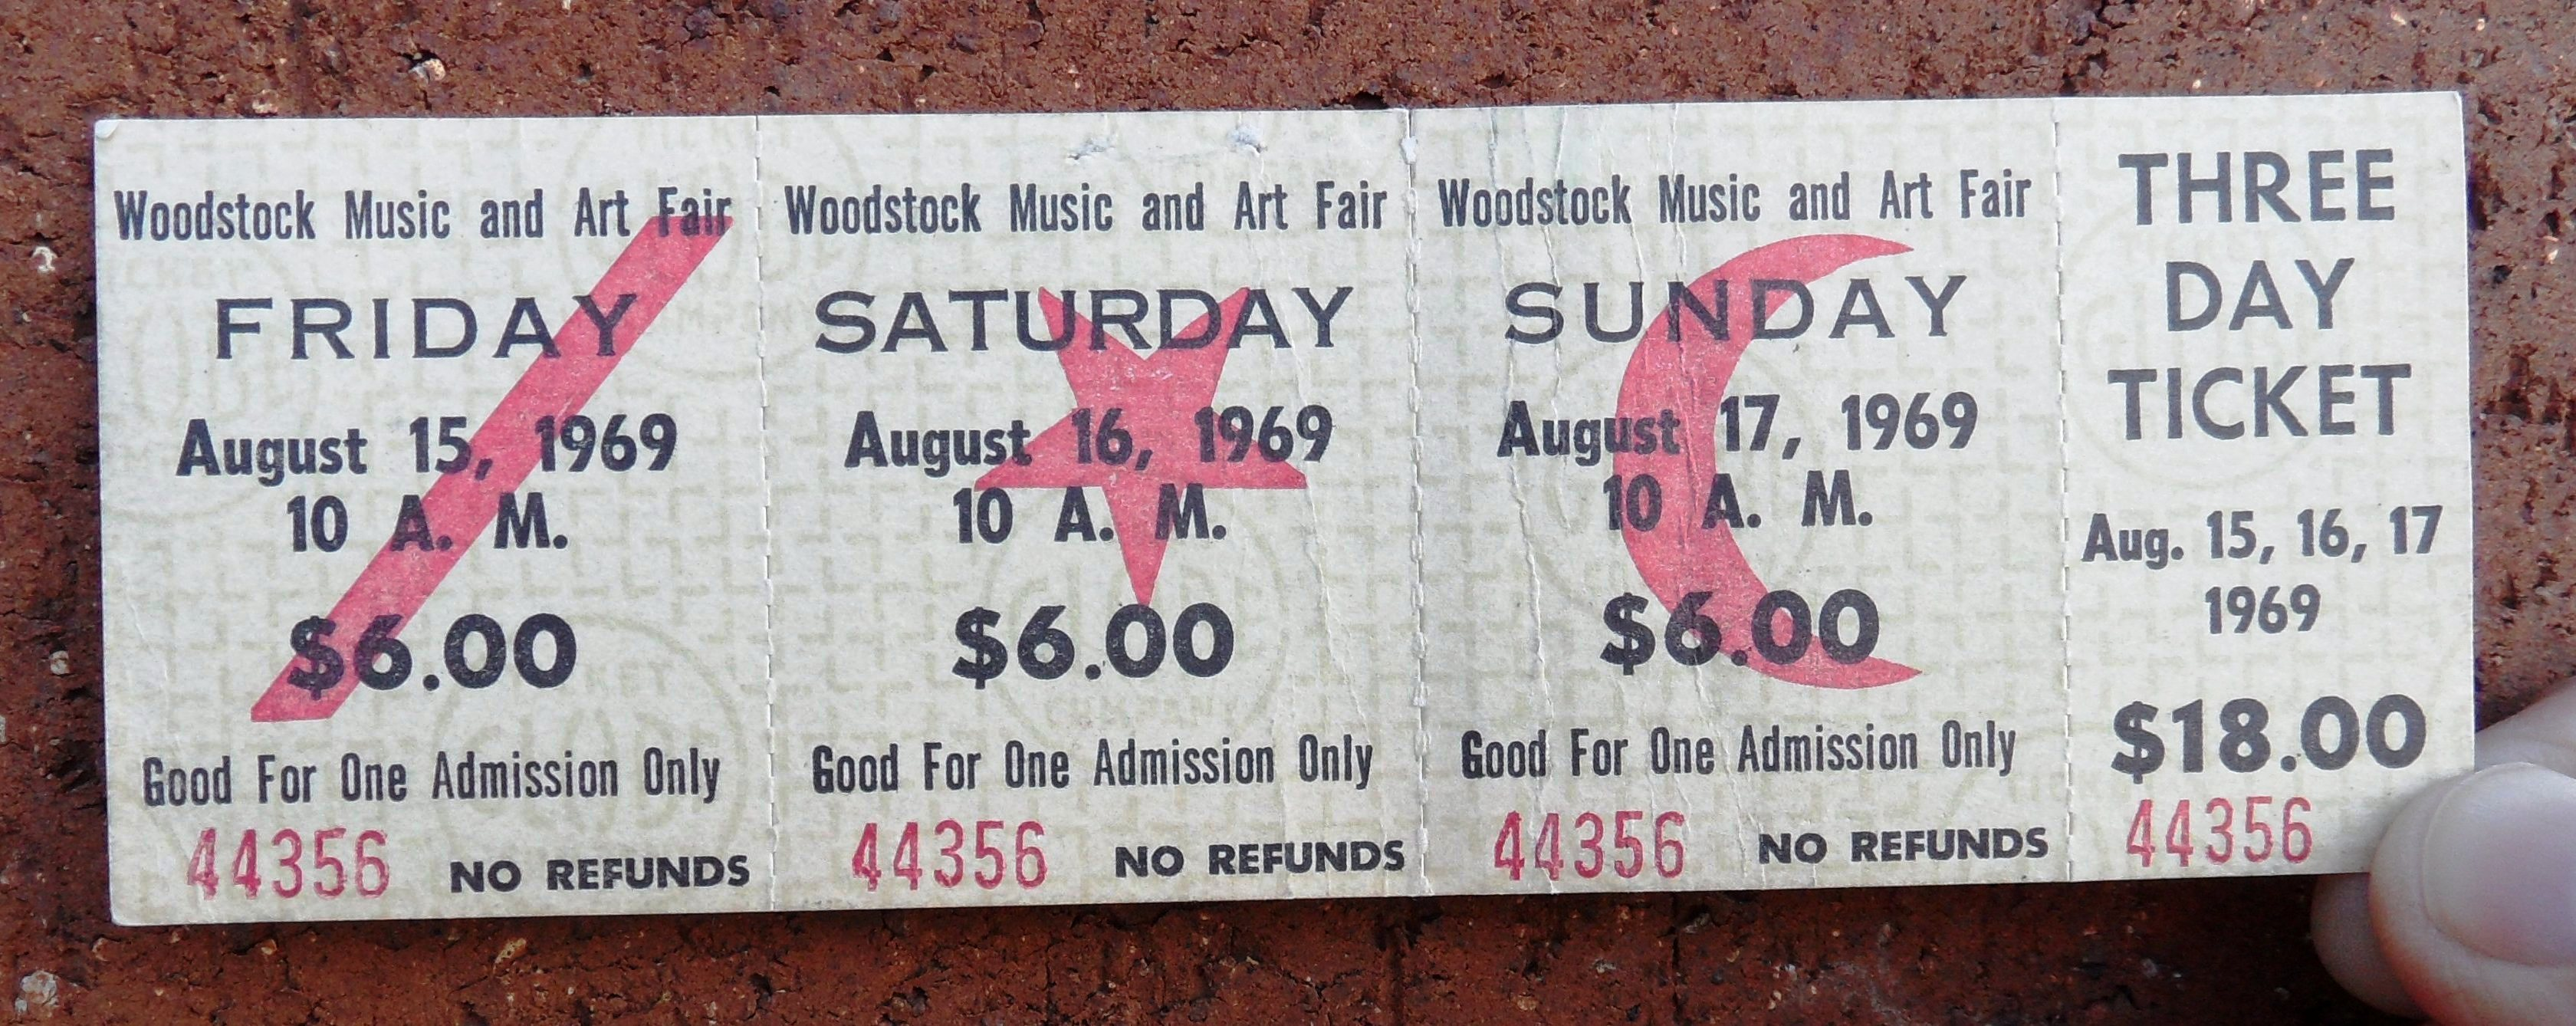 woodstock2.jpg?ssl=1